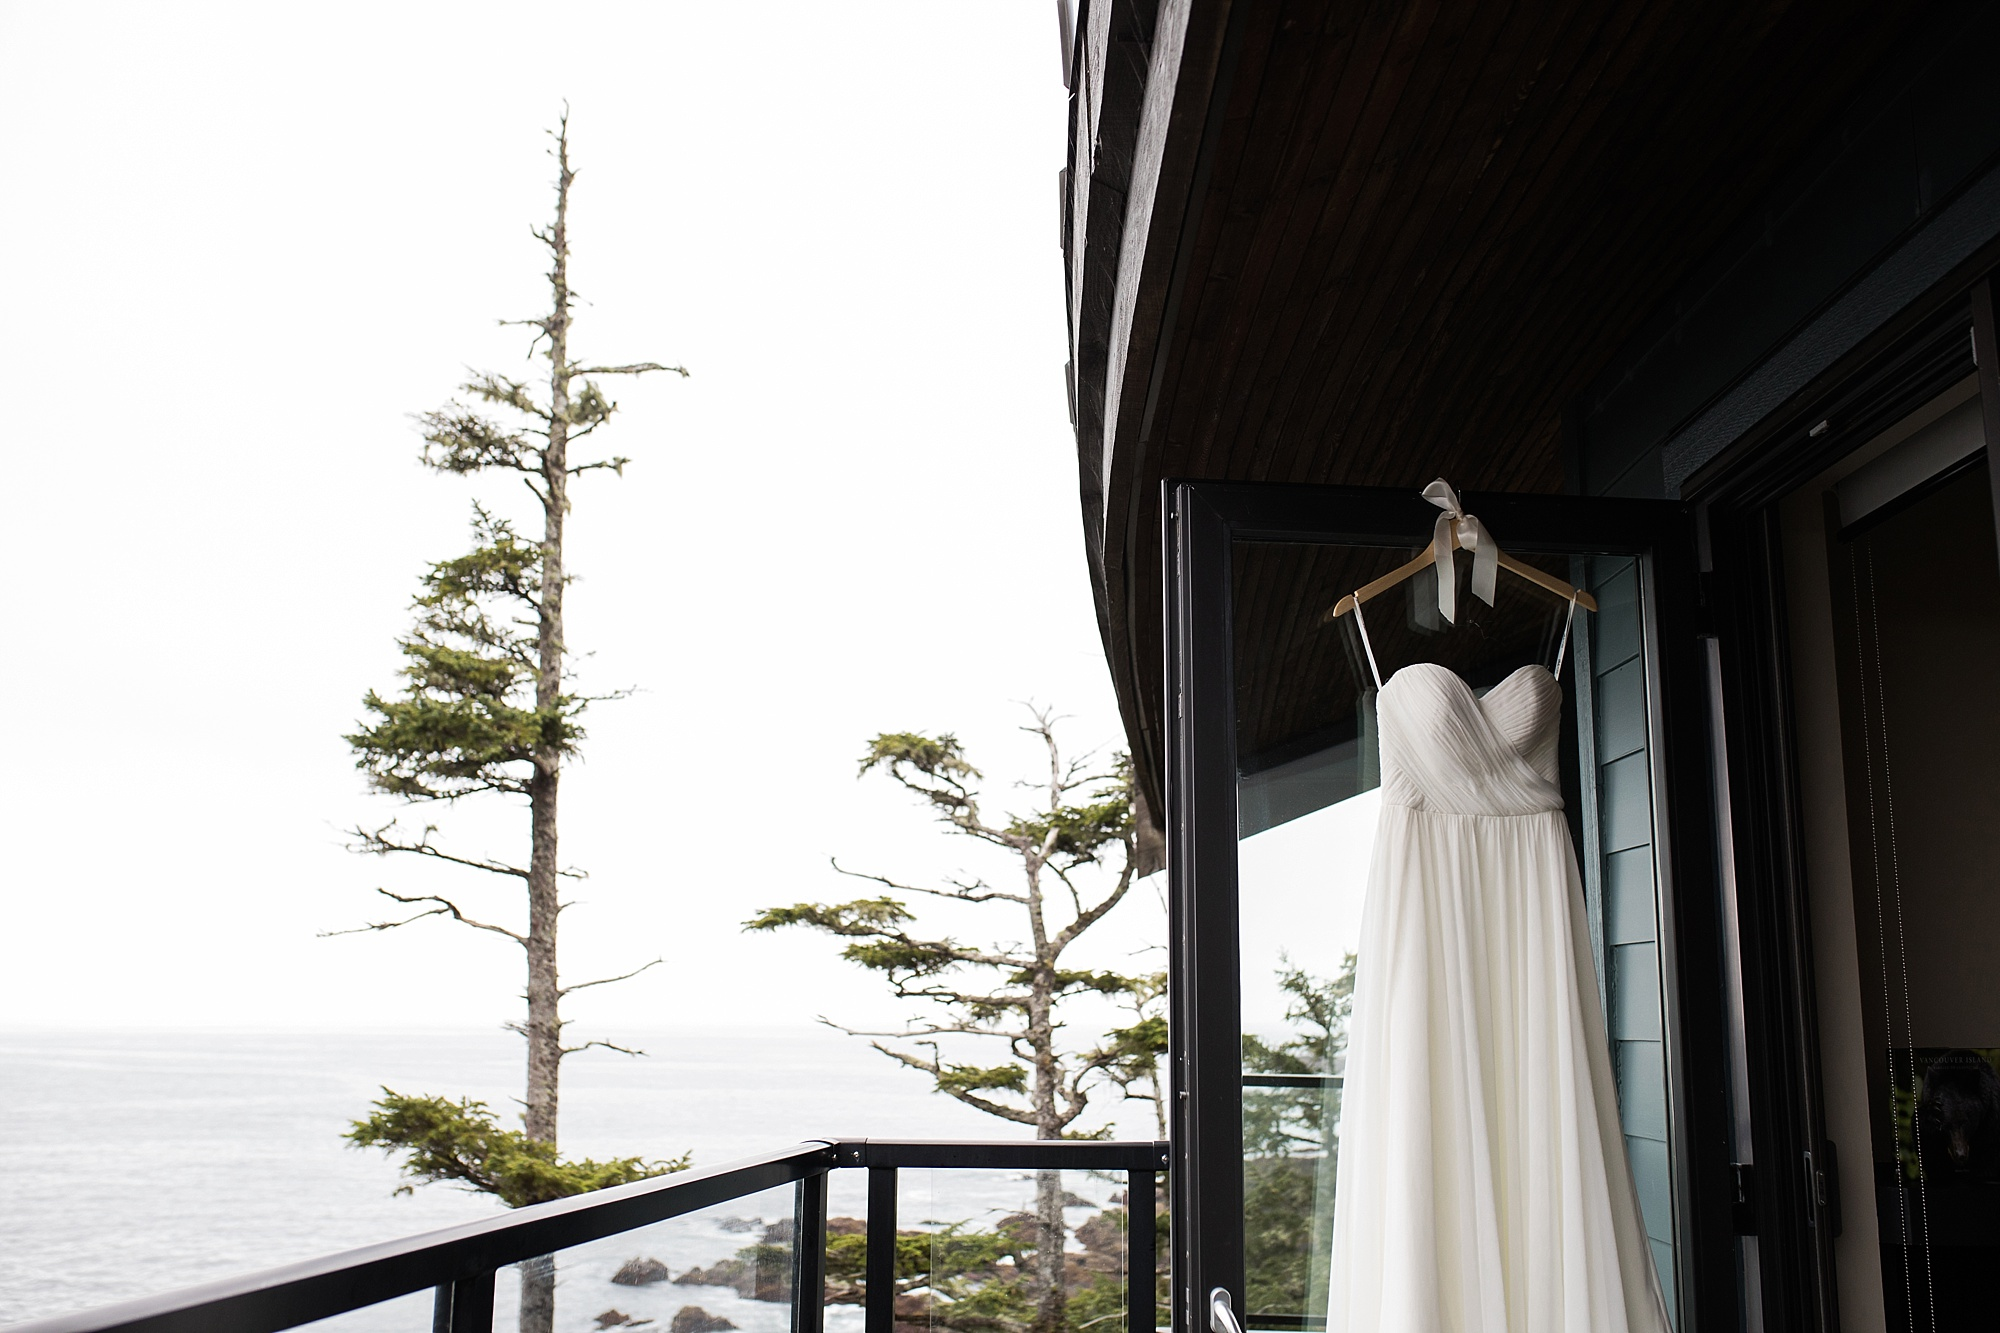 blackrockoceanfrontresort-wedding_0006.jpg